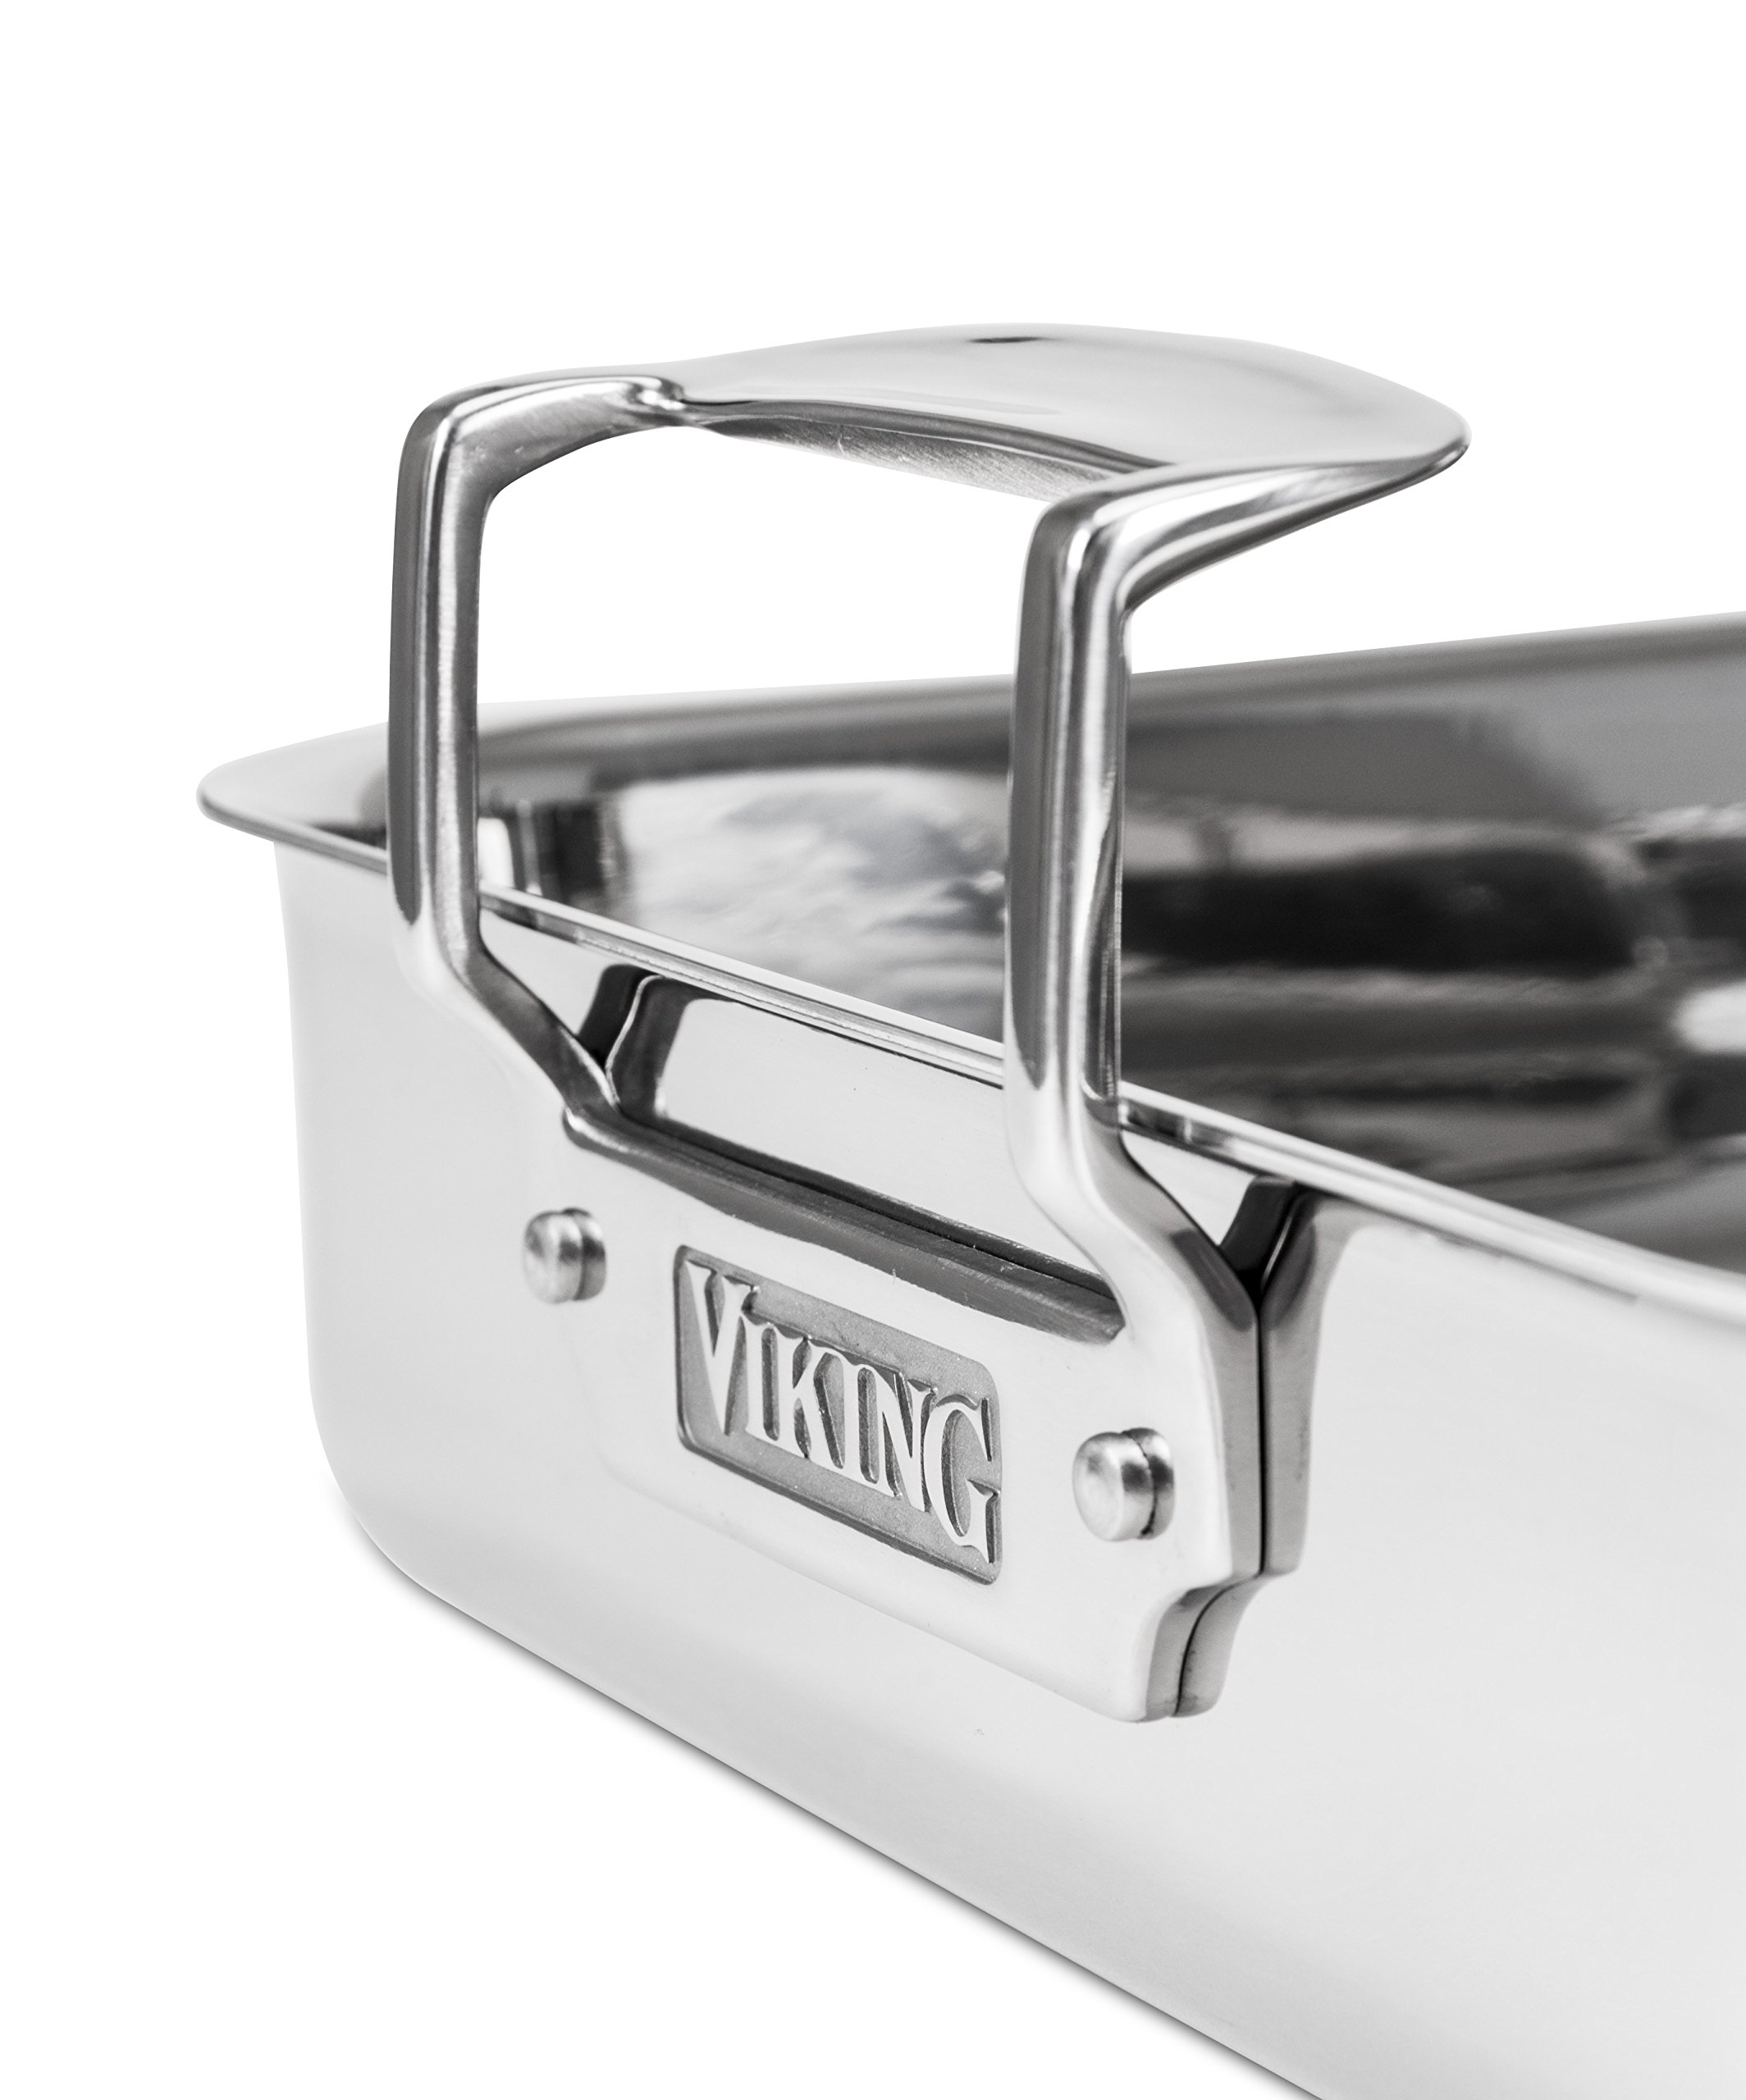 Viking 3-Ply Stainless Steel Roasting Pan with Nonstick Rack, 16 Inch by 13 Inch by Viking Culinary (Image #6)